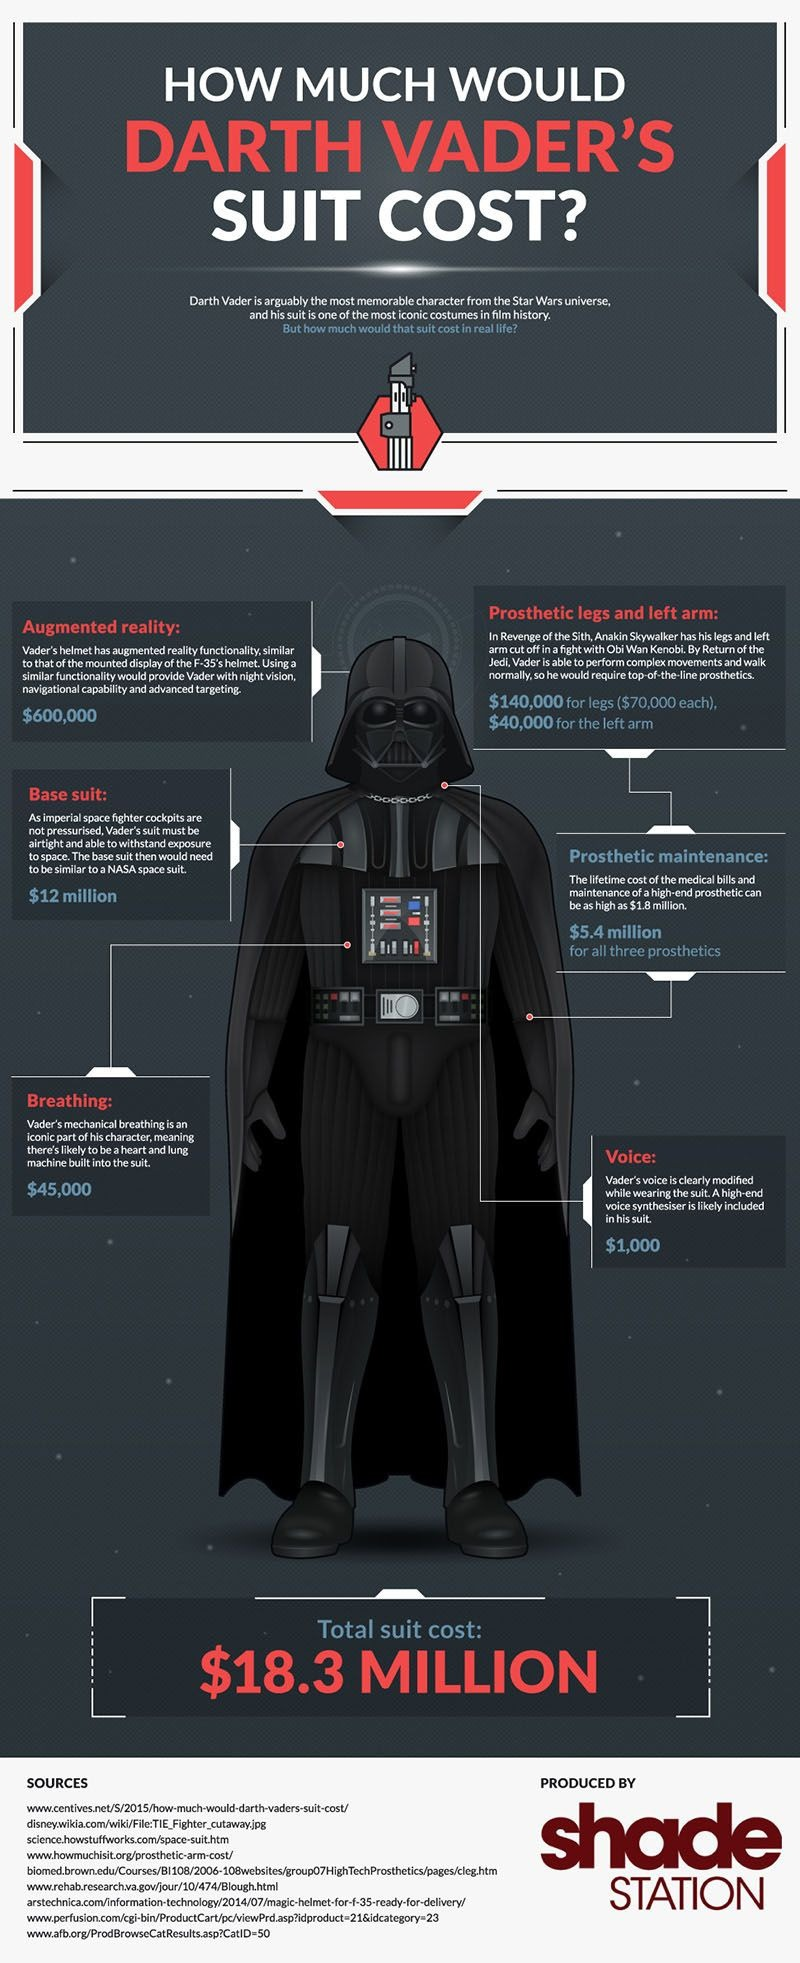 Darth_Vader_suit_cost